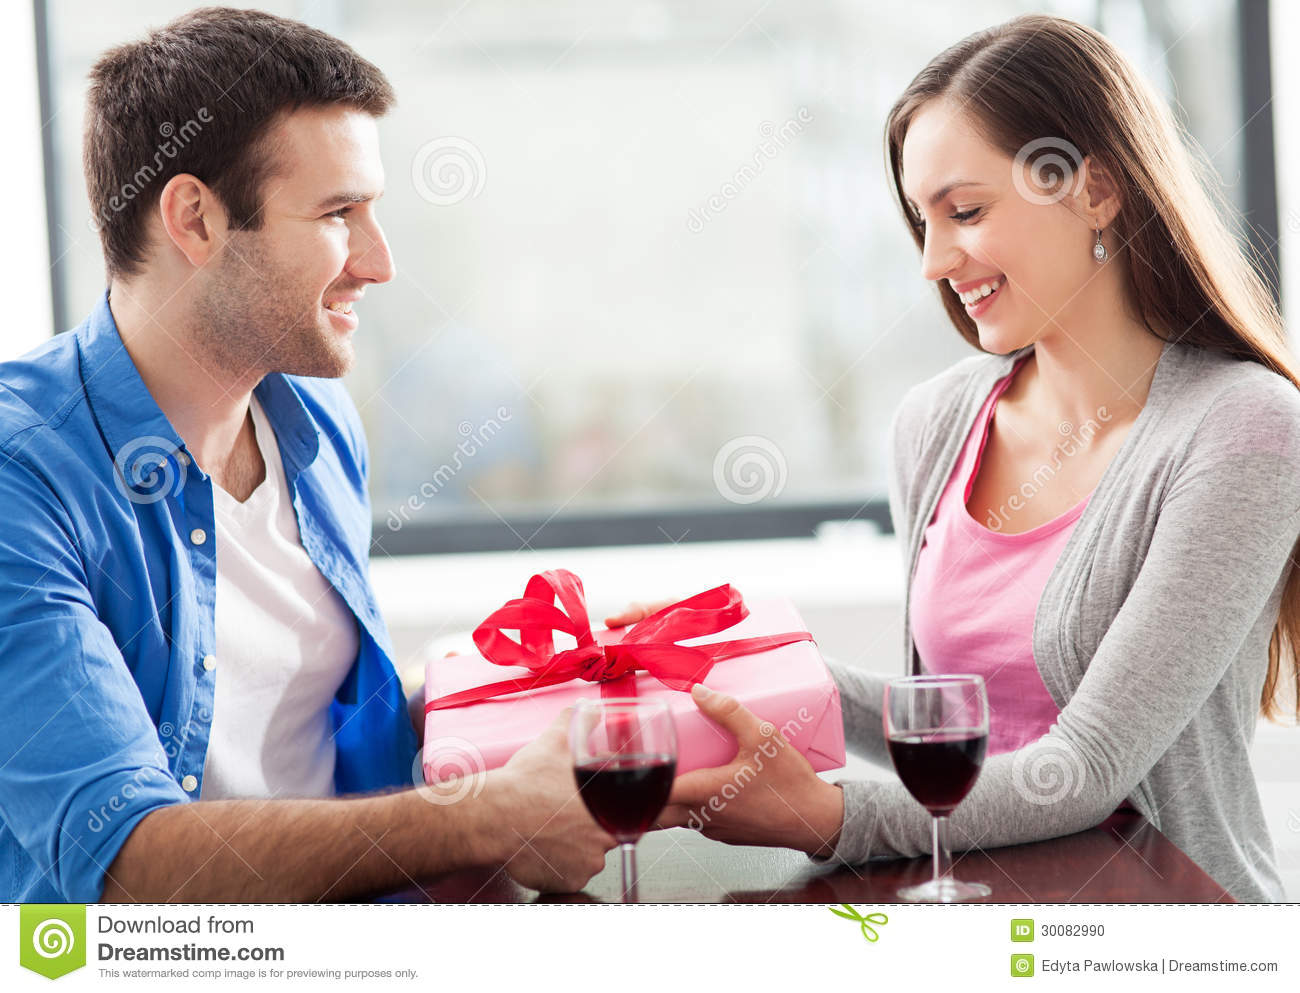 Man Giving Woman Gift At Cafe Stock Photo - Image of drink ...